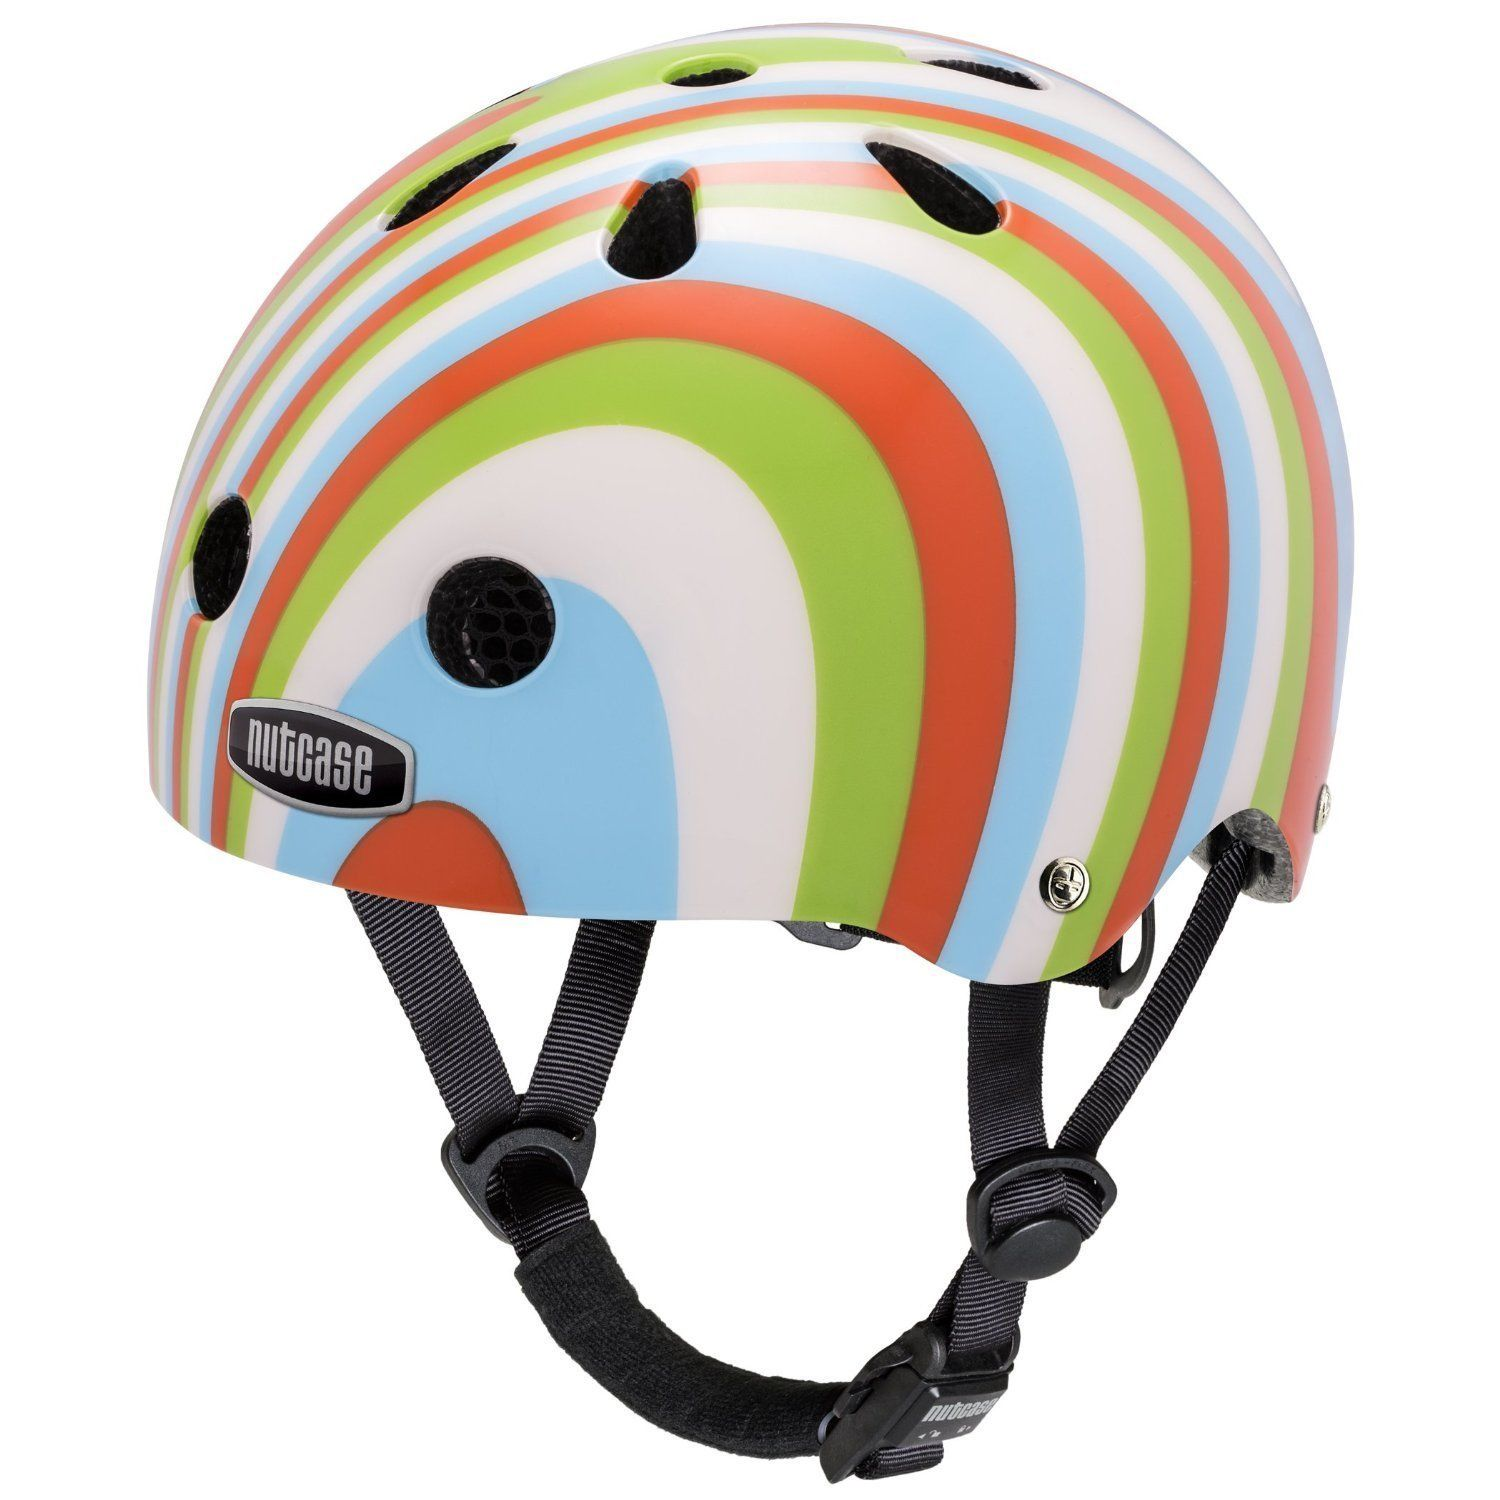 Nutcase Extra Small XS Little Nutty Space Cadet Bike Street Skateboard Helmet by Nutcase